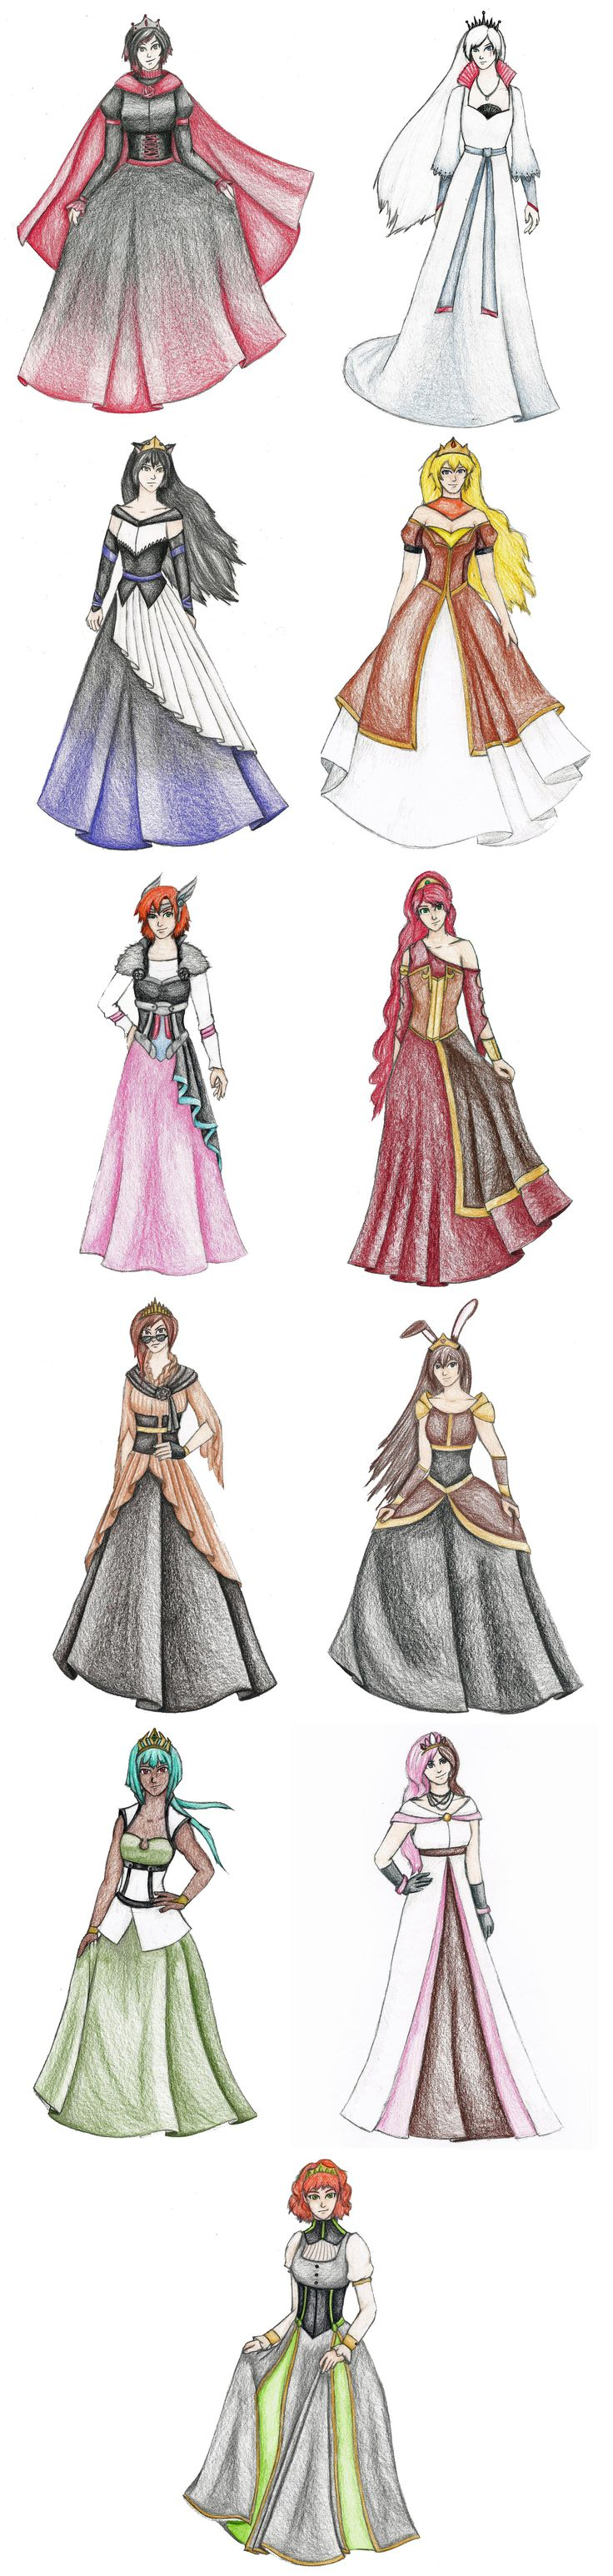 RWBY Princess Collection by Very-Crofty.deviantart.com on @DeviantArt